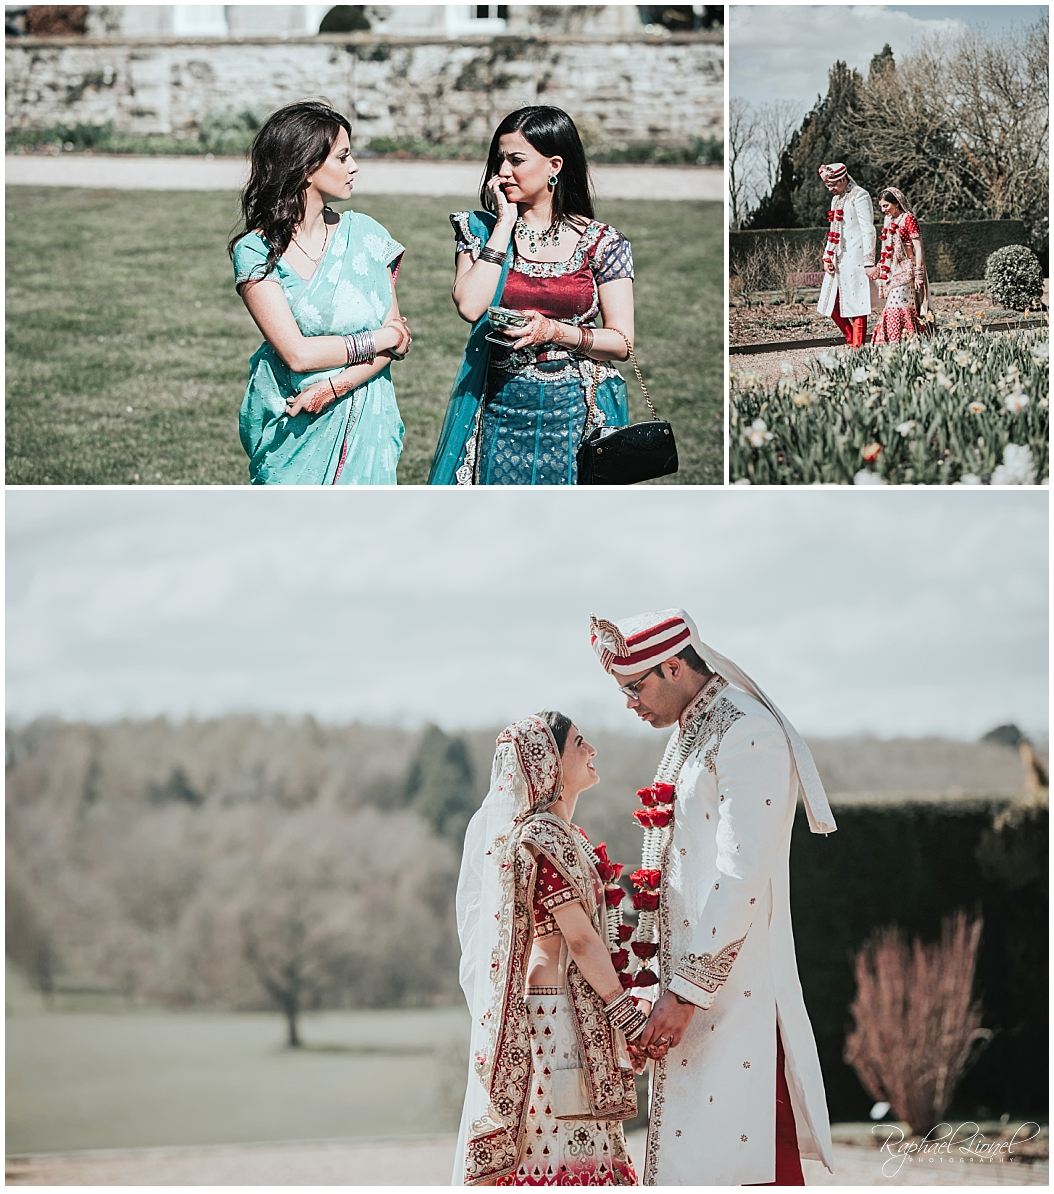 RagleyHallWedding38 - A Ragley Hall Indian Wedding | Sunny and Manisha